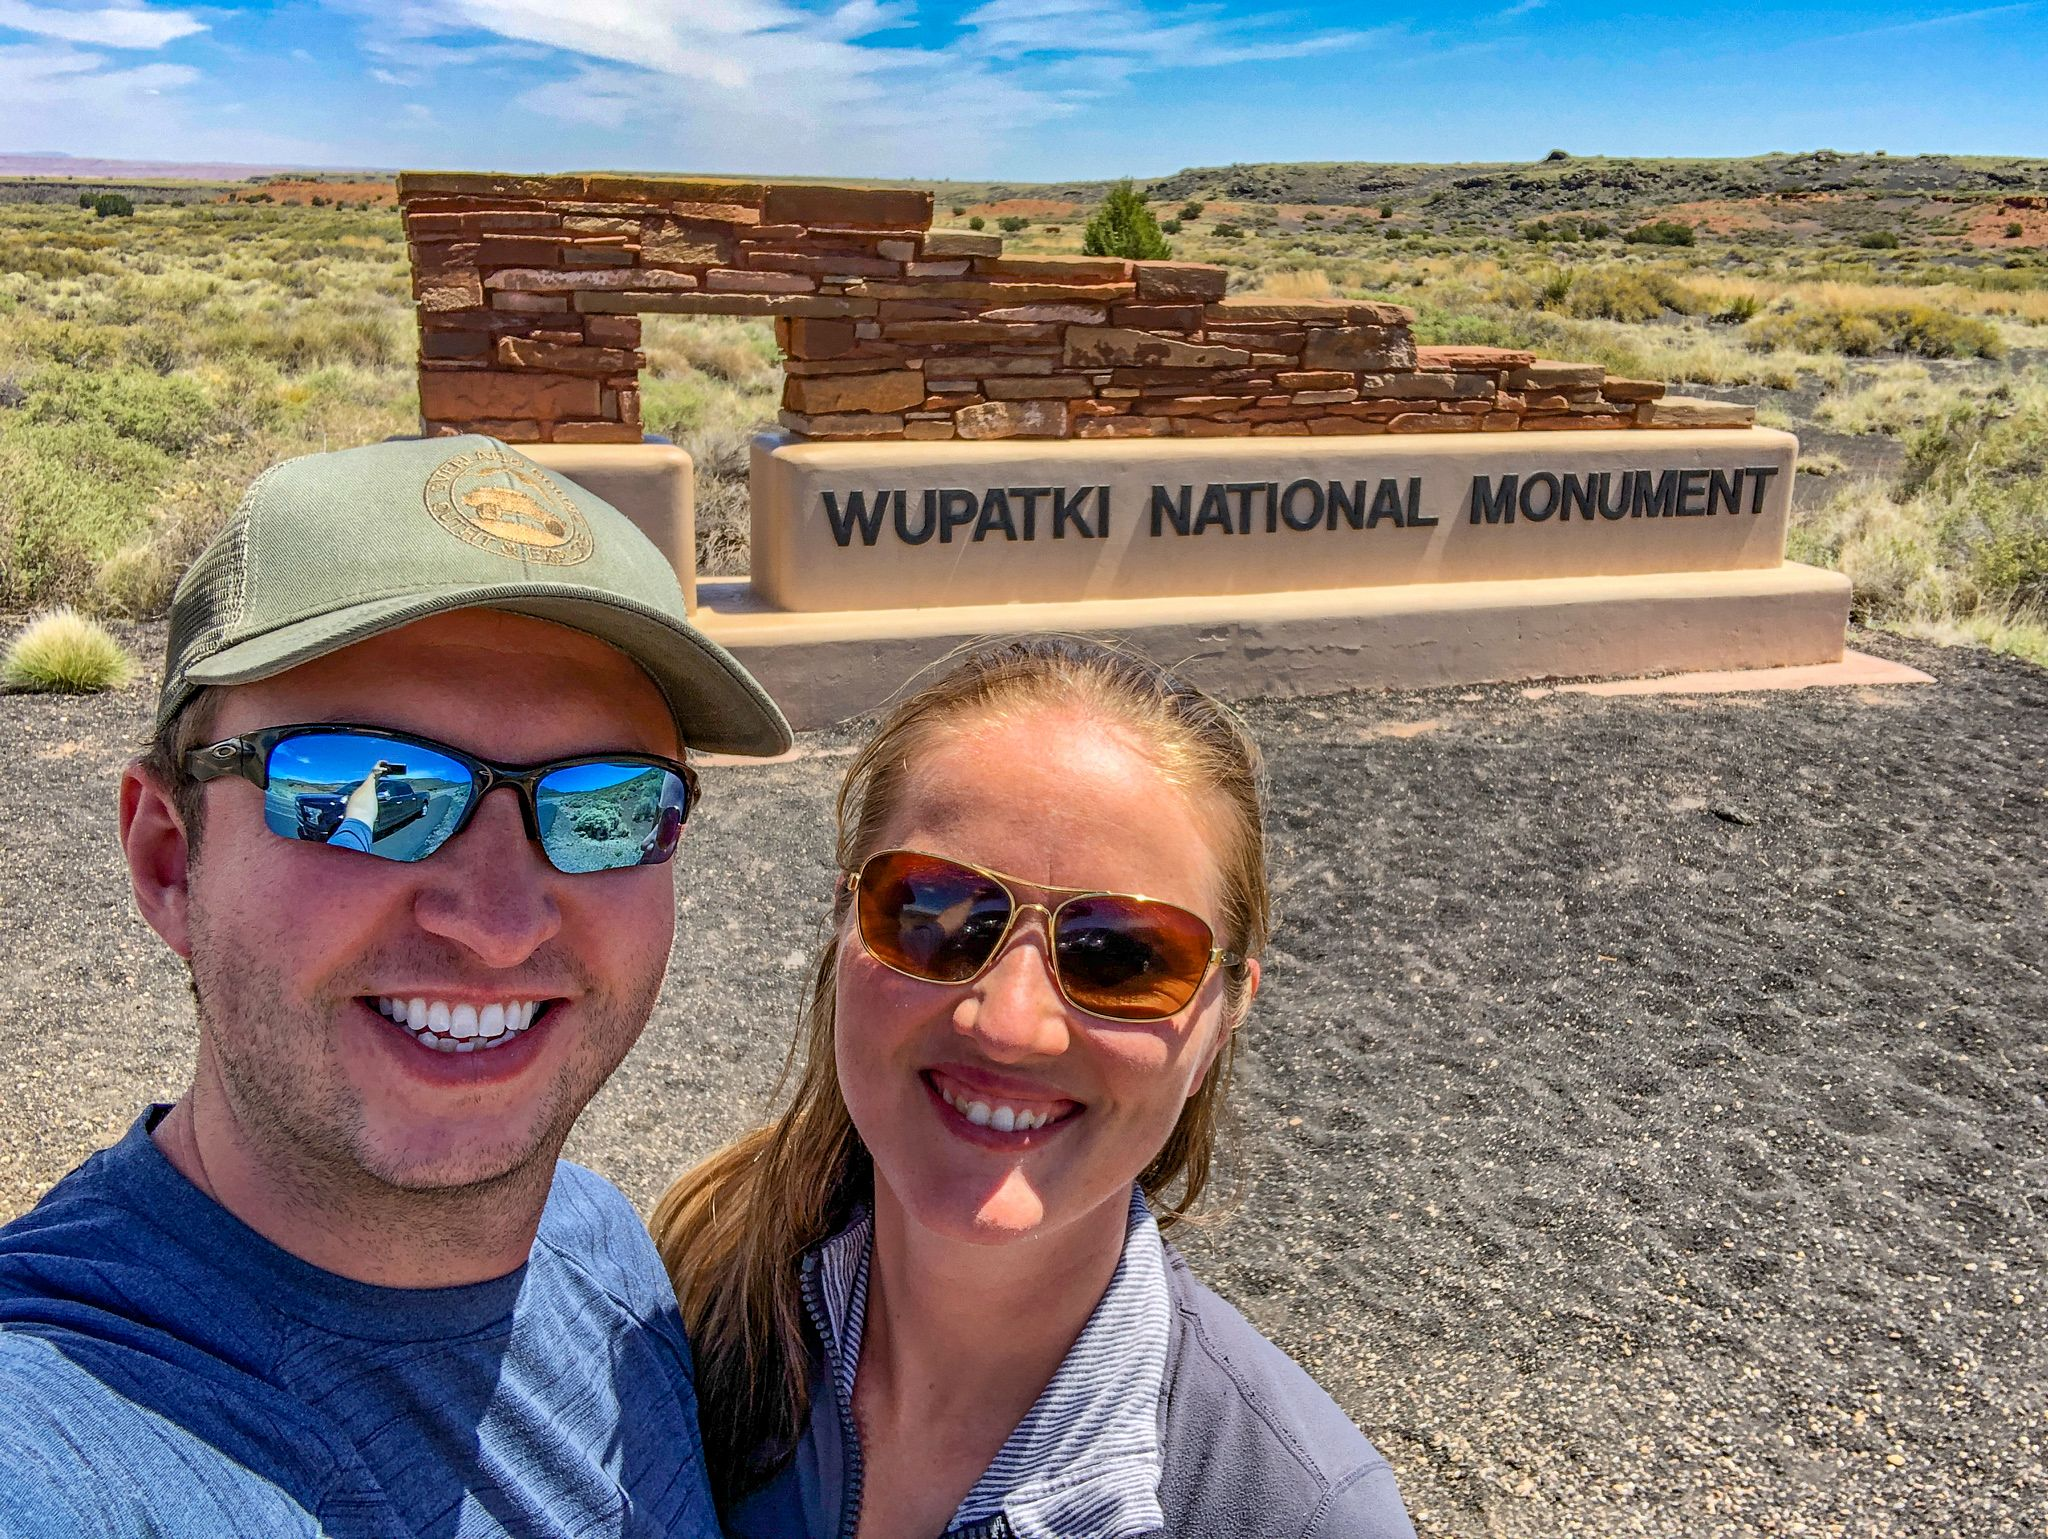 Wupatki National Monument Sign